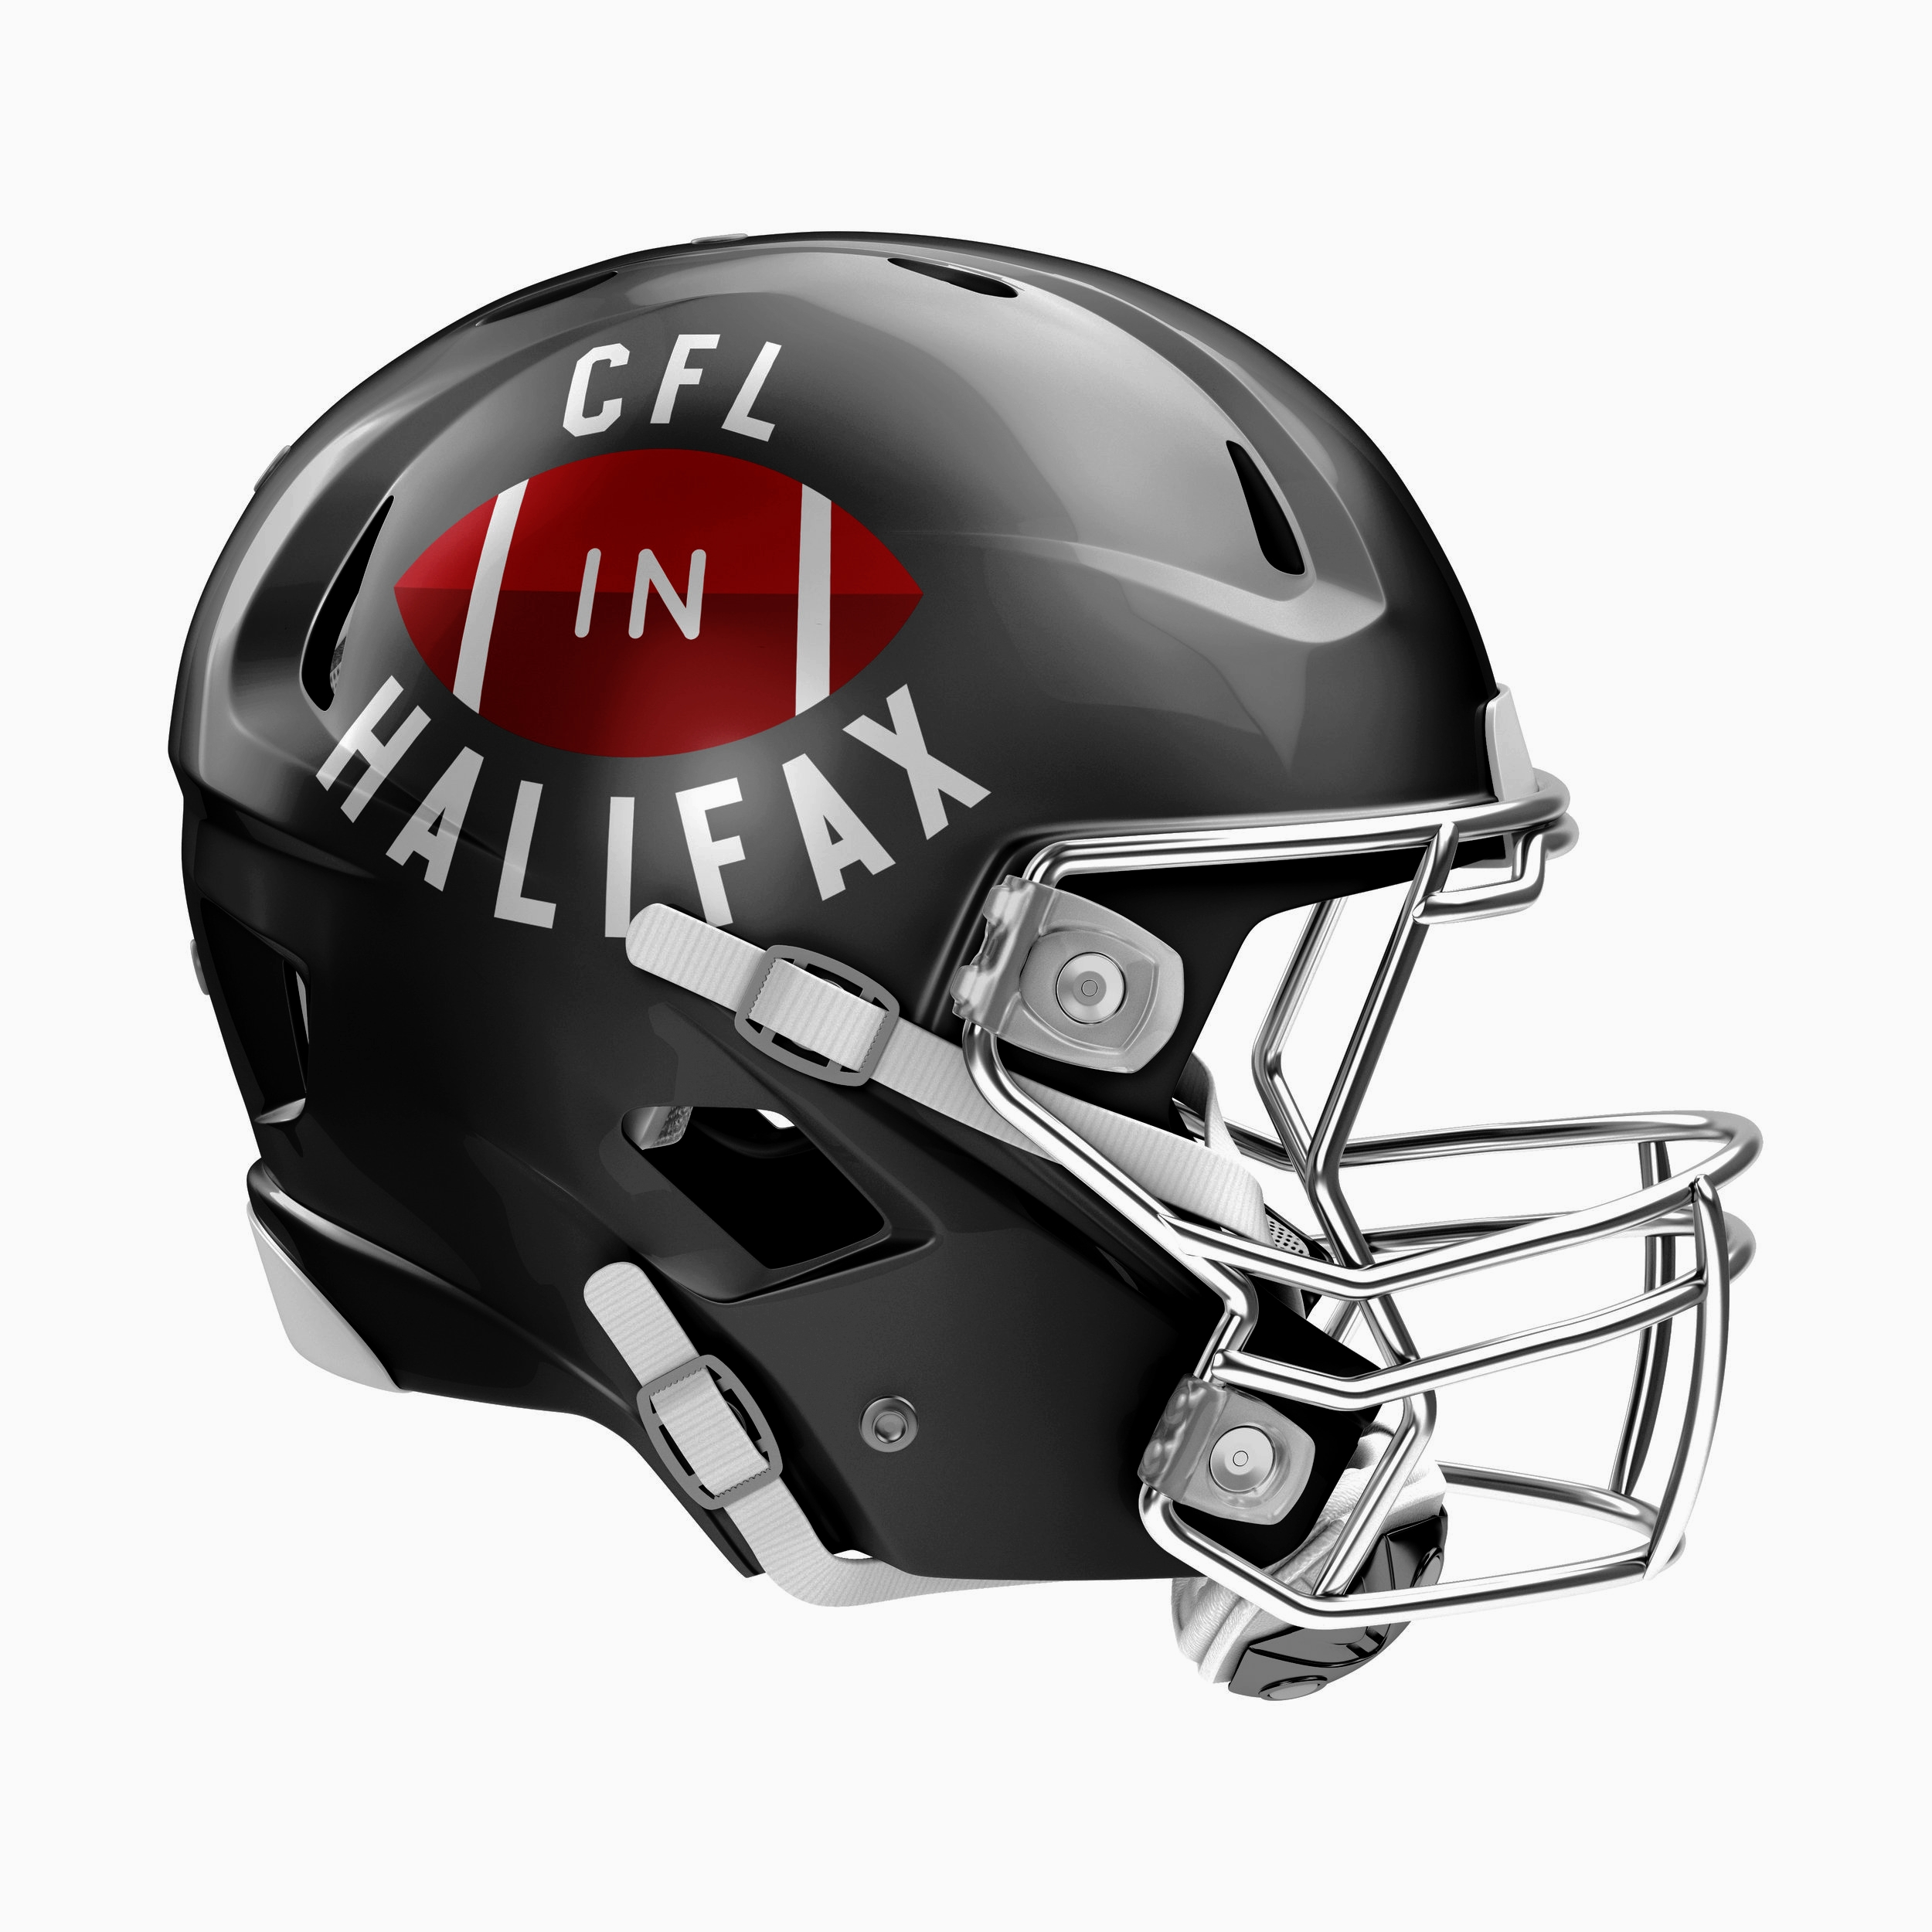 CFL IN HALIFAX -